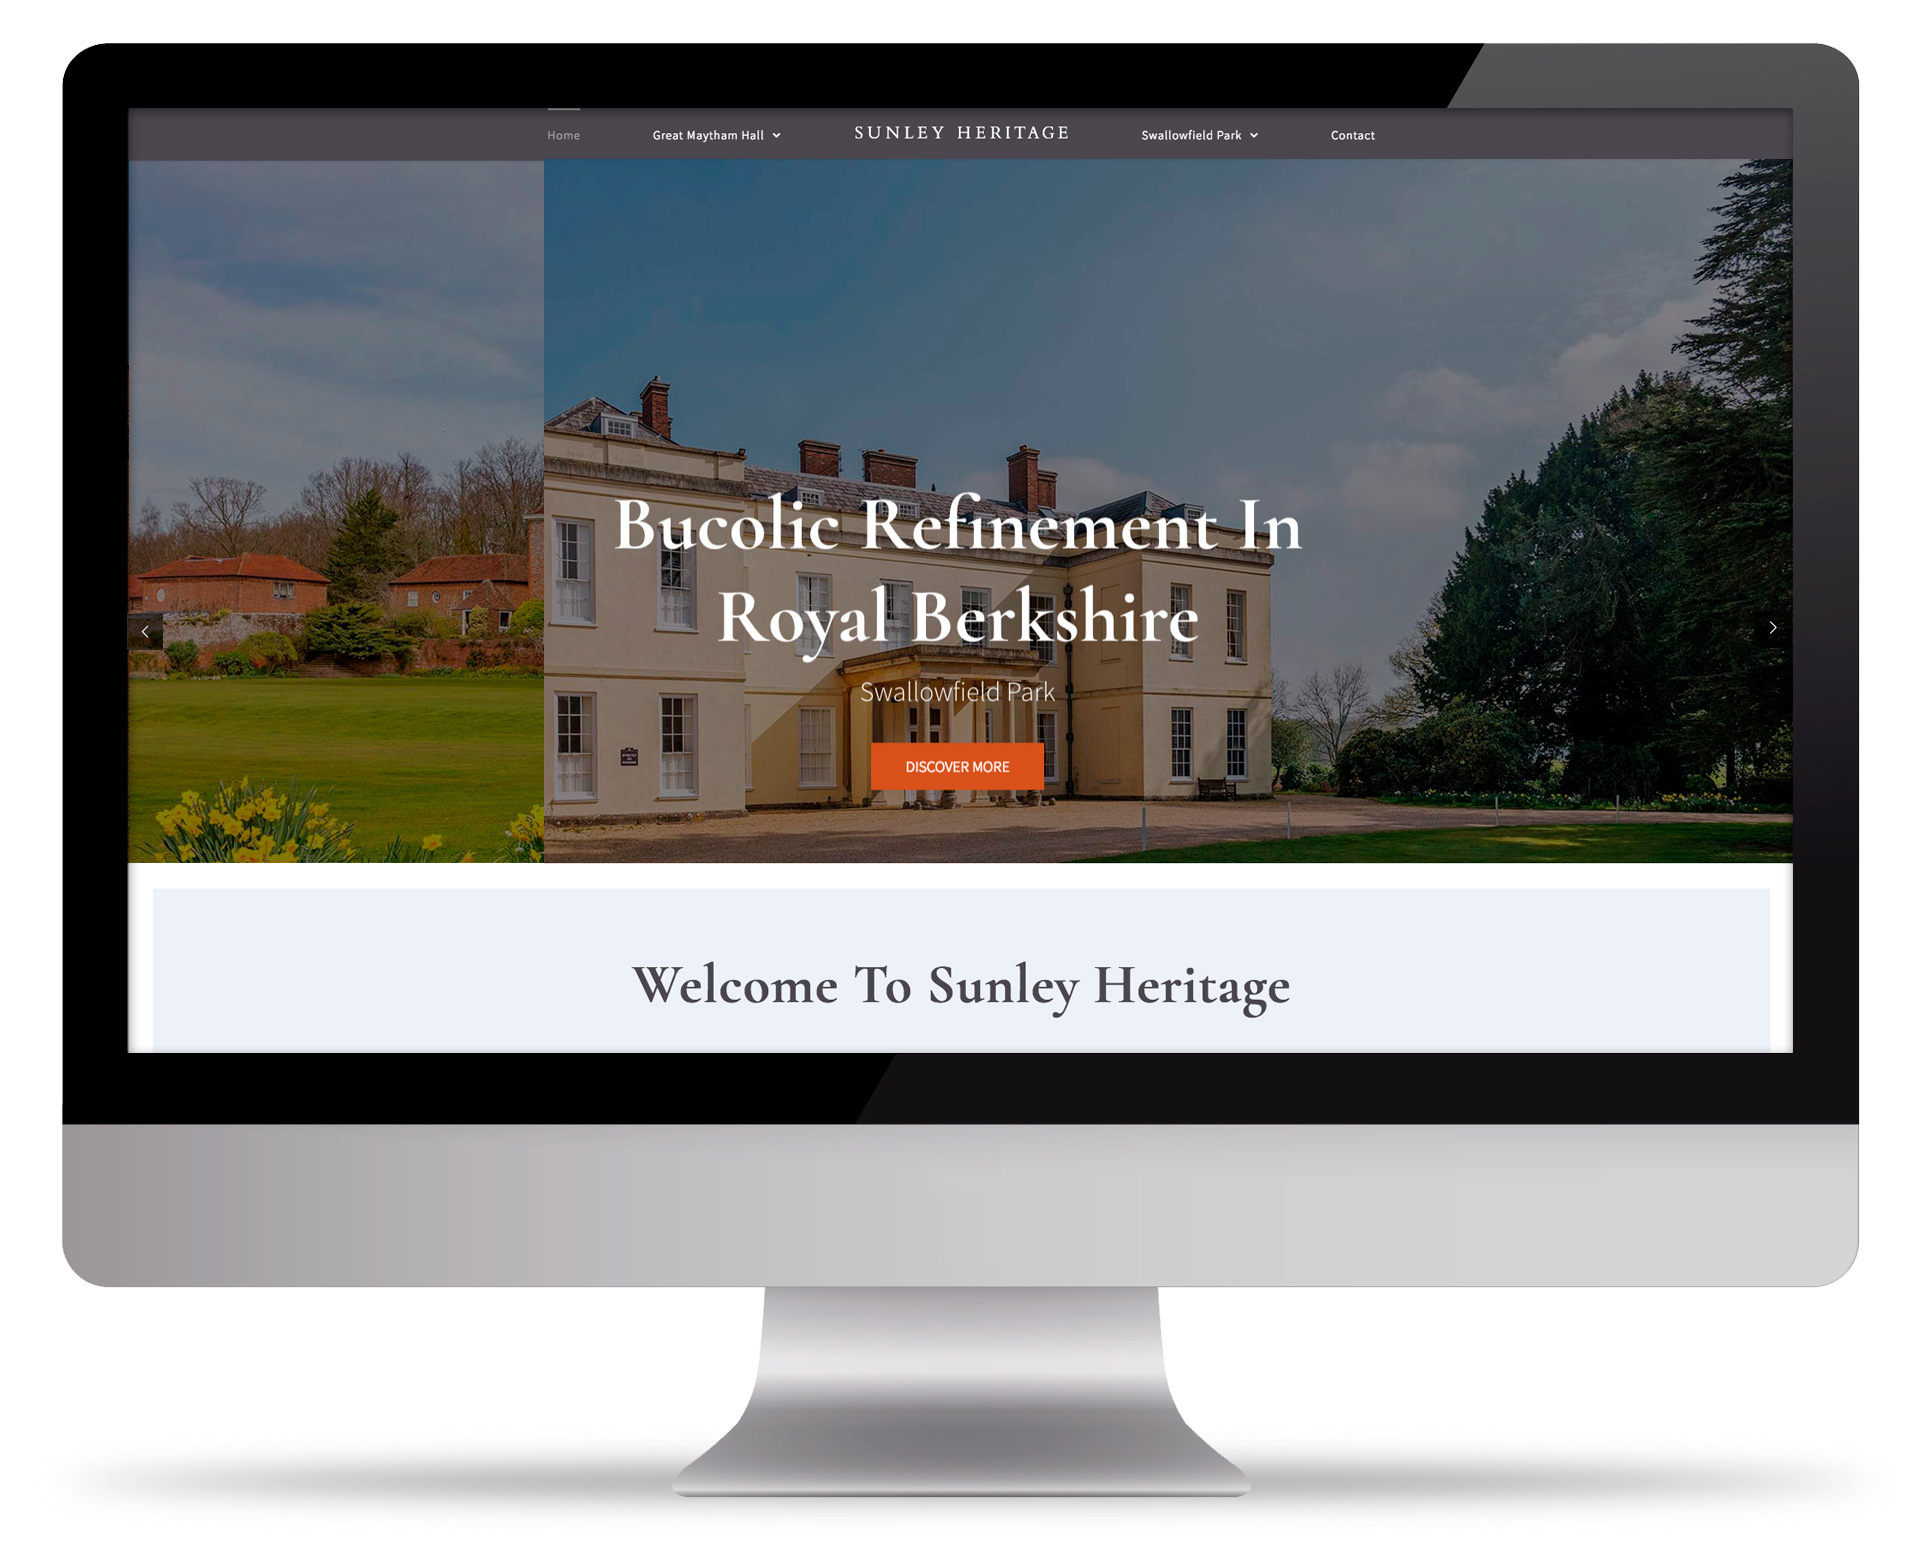 Sunley Heritage - Mobile responsive website build